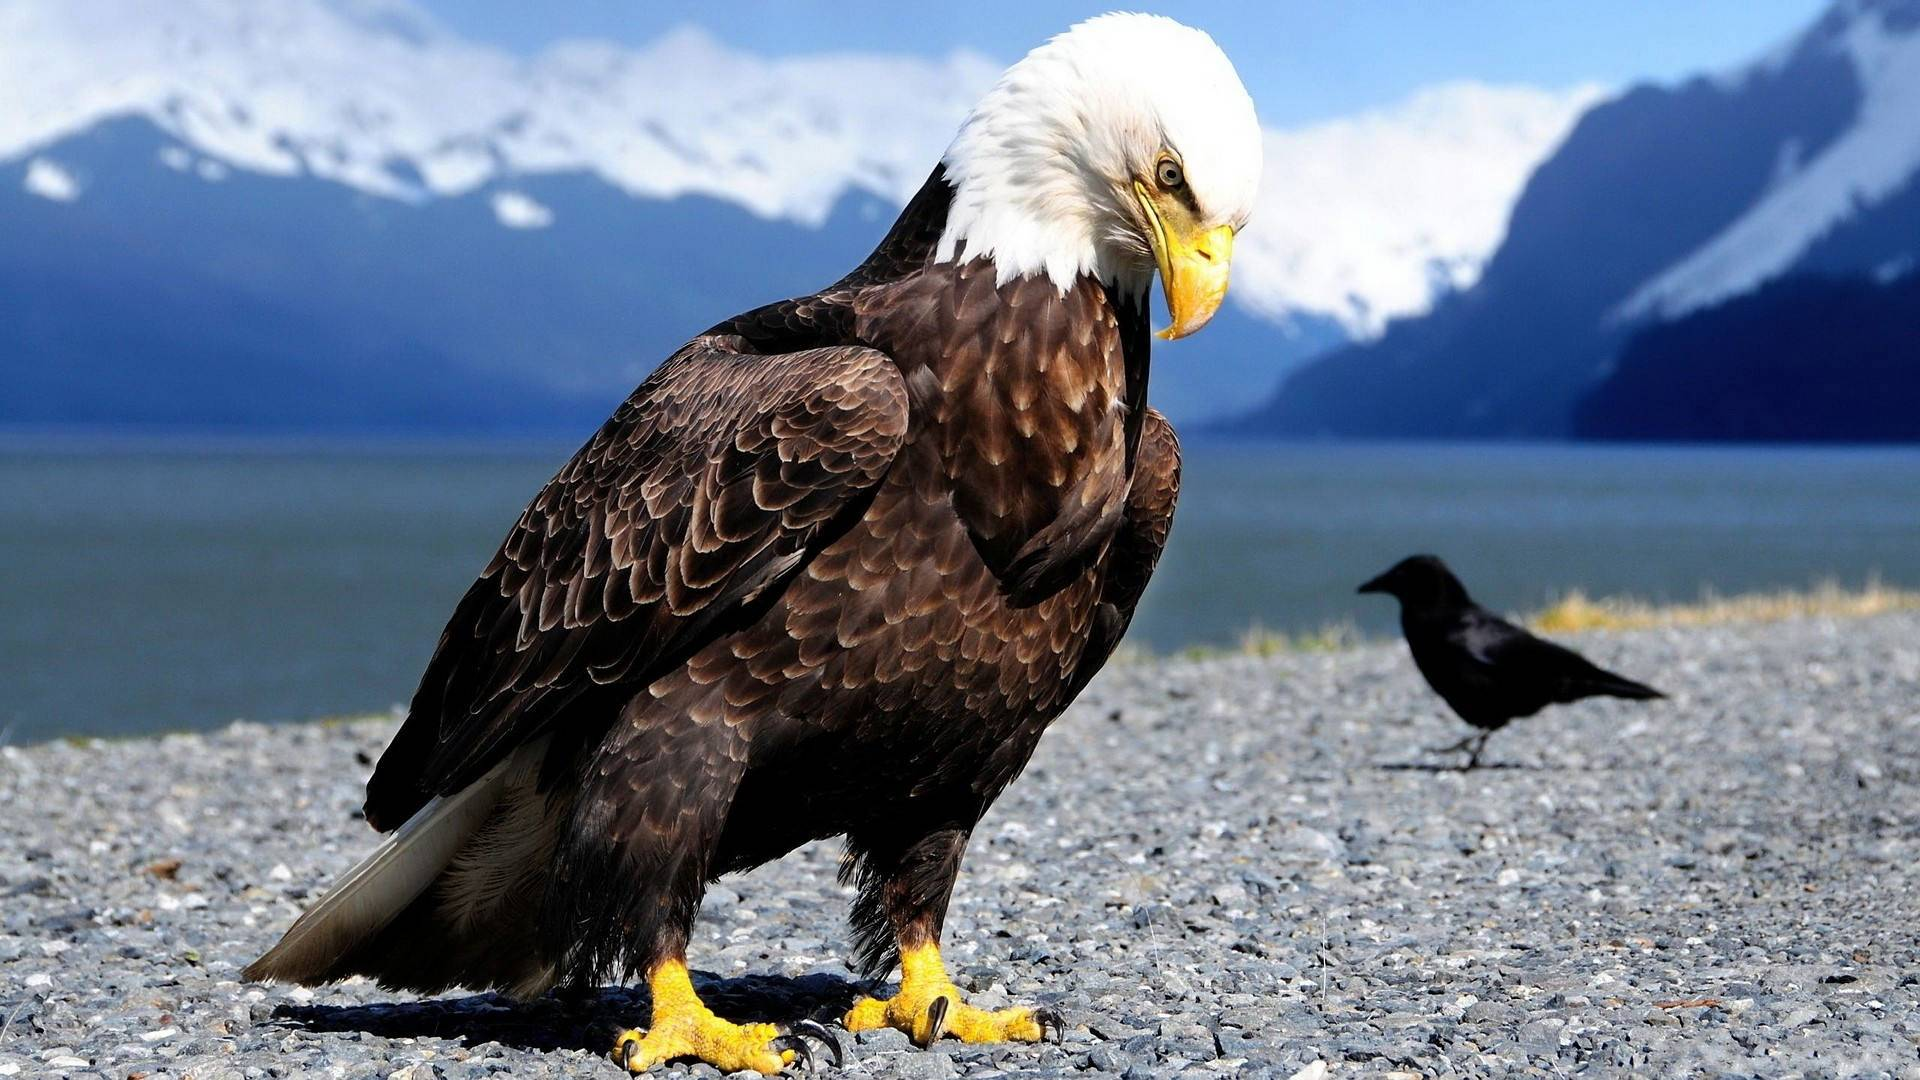 beautiful eagle wallpaper background